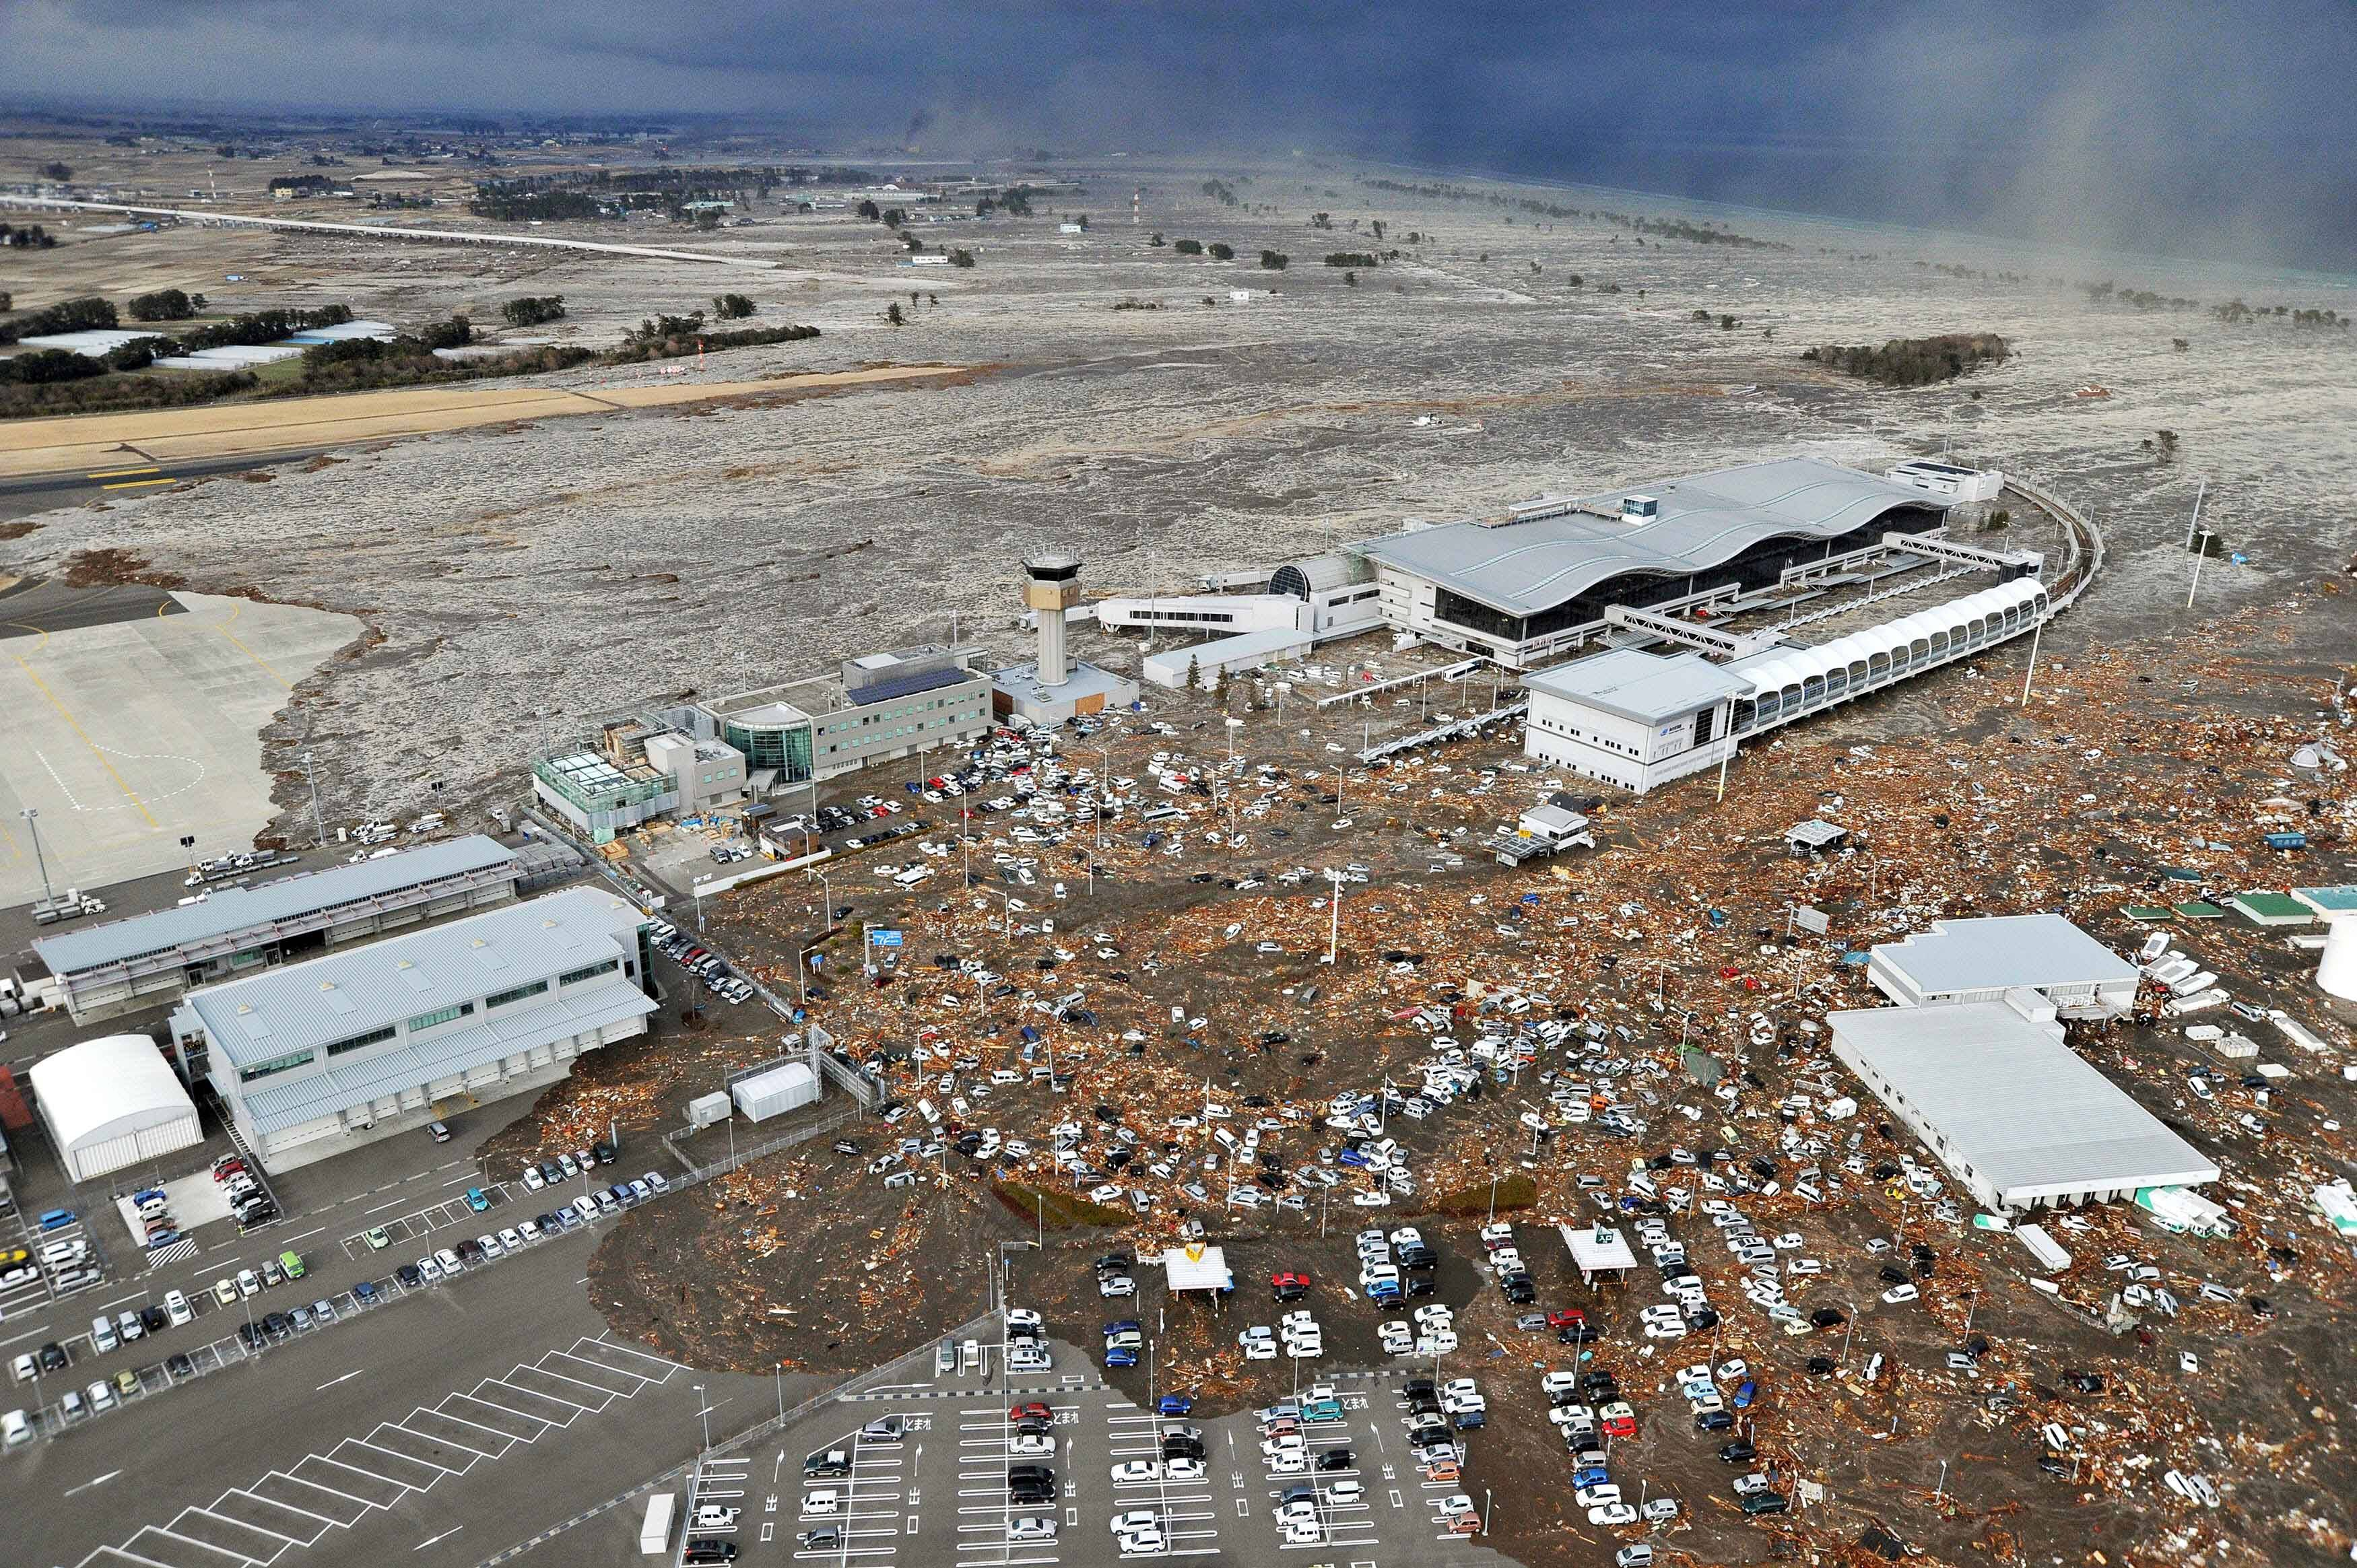 Tarmac, parking lot and surrounding area are covered with mud and debris carried by tsunami at Sendai Airport in Sendai, Miyagi Prefecture (state) after Japan was struck by a strong earthquake off its northeastern coast Friday.